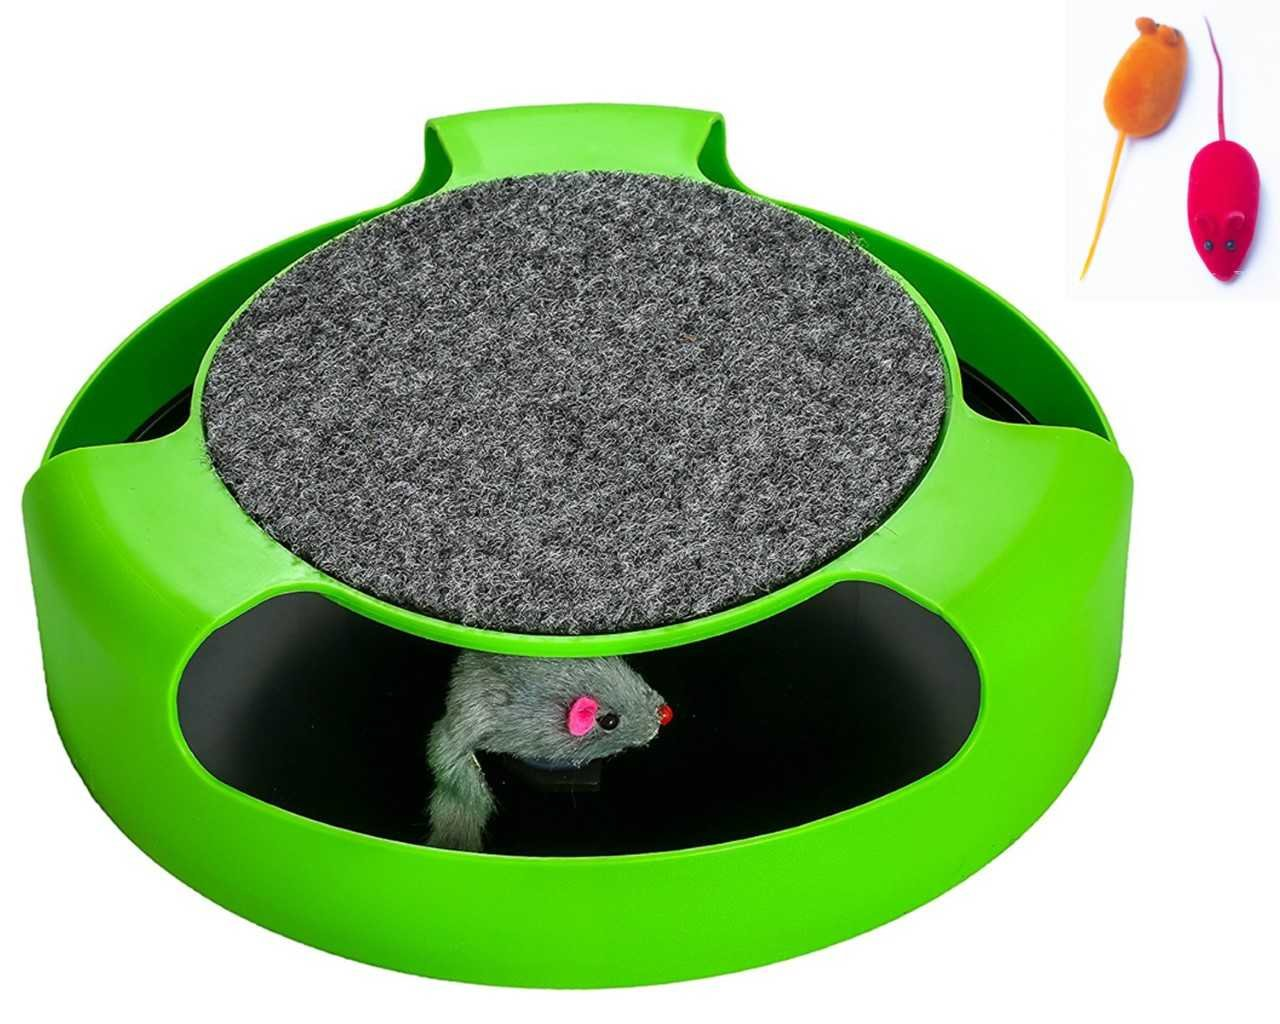 AroPaw Cat Interactive Toy - Cat Toy With Rotating Running Mouse And A Two In One Scratching Pad - Catch The Mouse - Catnip Toy Mouse (Catnip Not Included) - Quality Cat Toy For All Size Cats